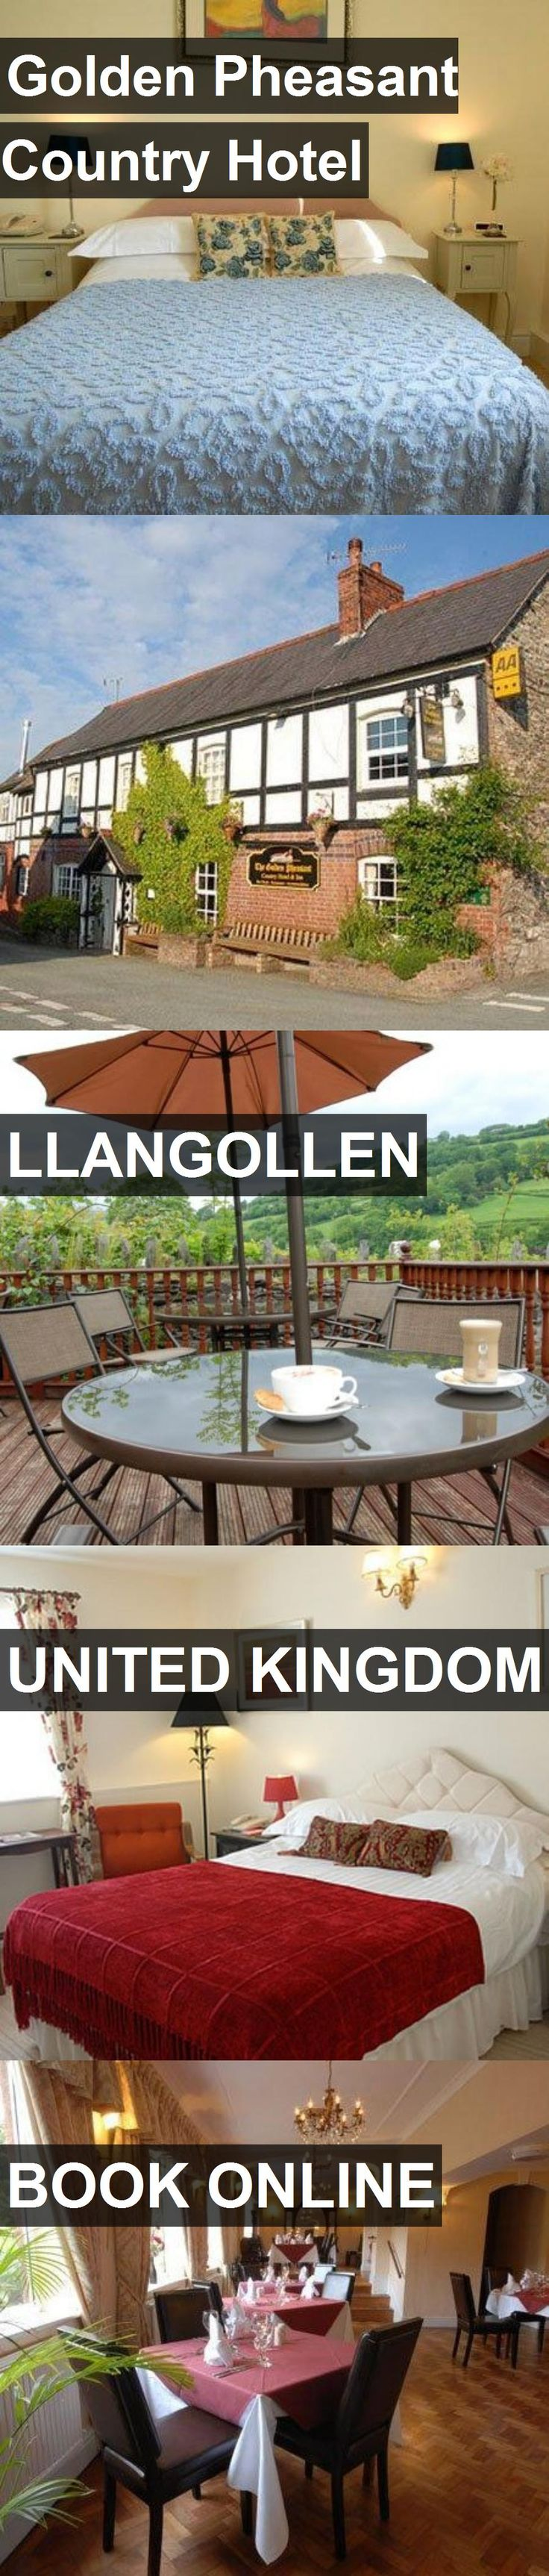 Hotel Golden Pheasant Country Hotel in Llangollen, United Kingdom. For more information, photos, reviews and best prices please follow the link. #UnitedKingdom #Llangollen #hotel #travel #vacation